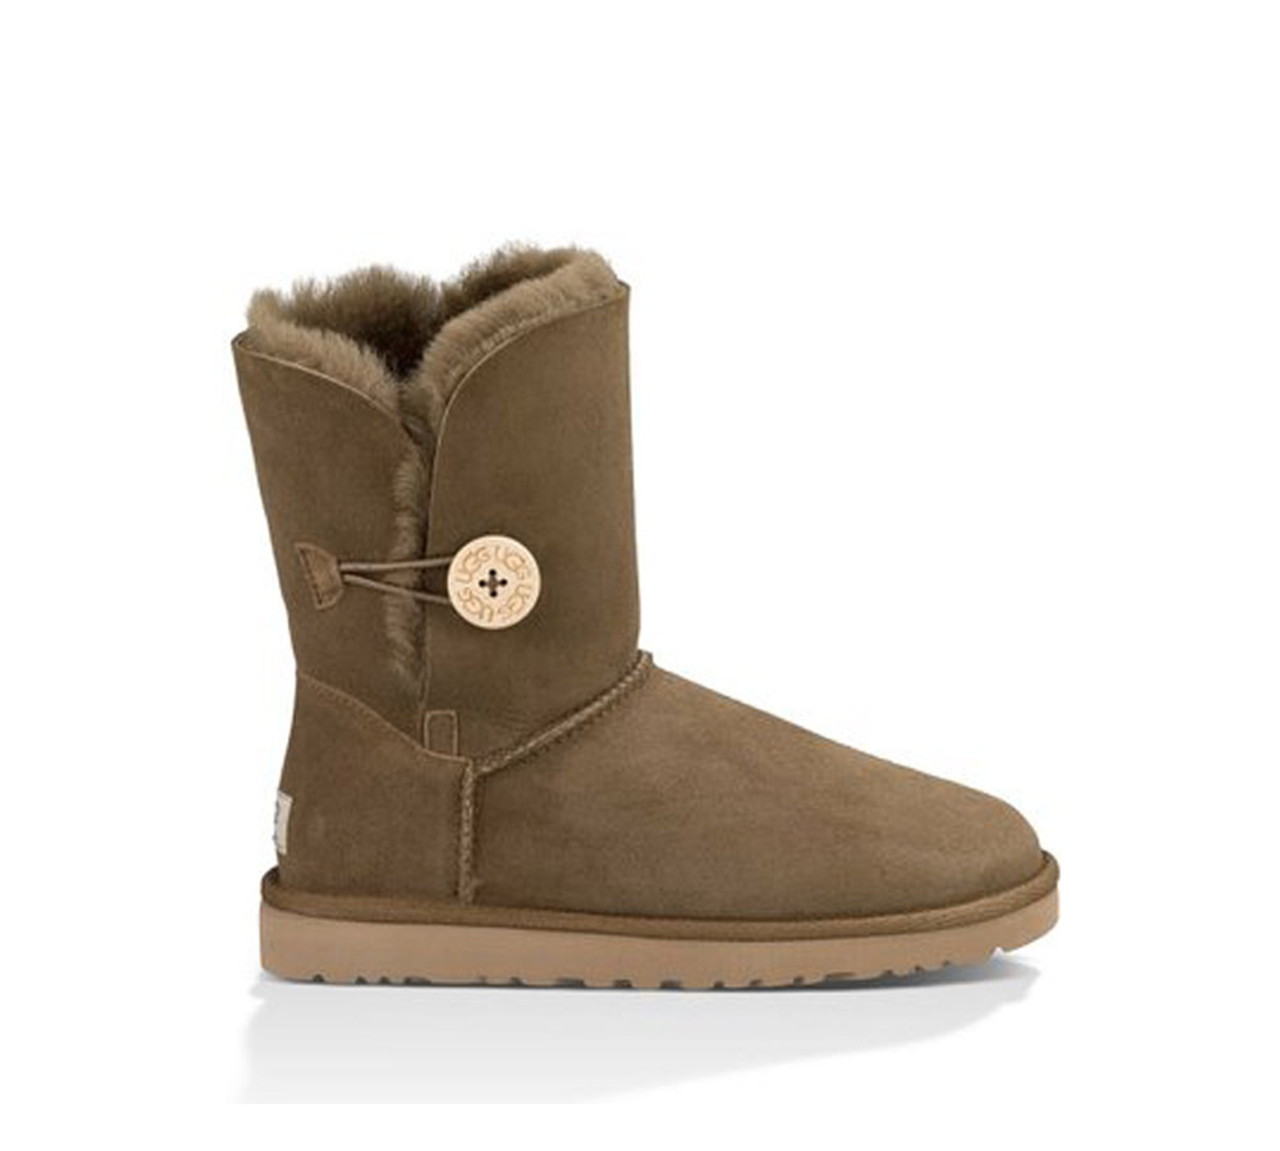 523e90bbd2c UGG Women's Bailey Button Boot Dry Leaf